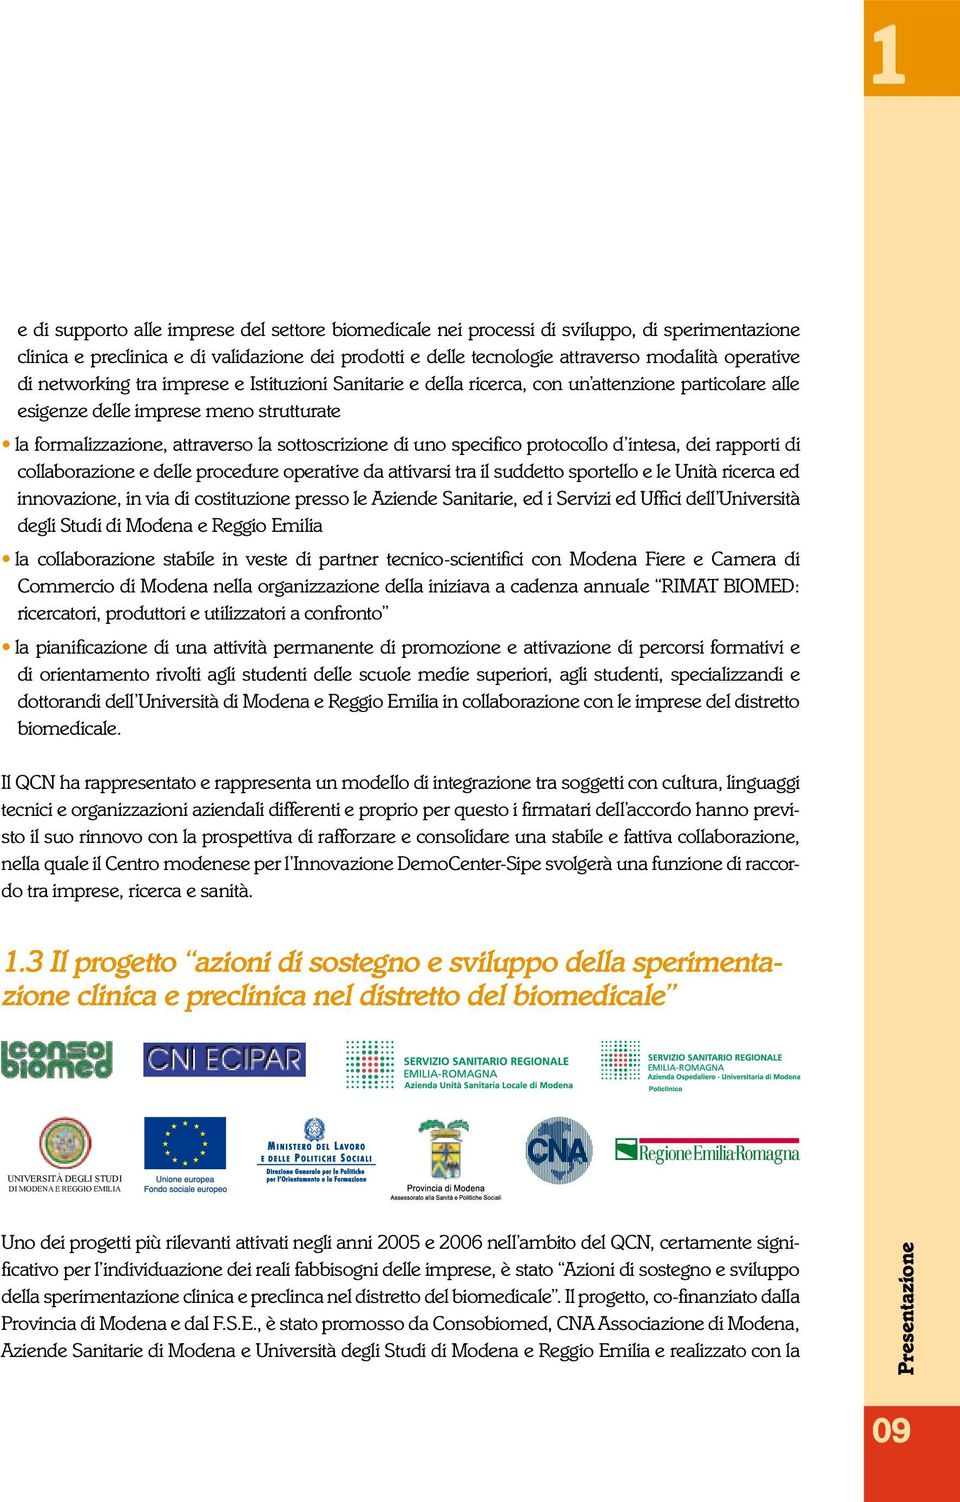 specifico protocollo d intesa, dei rapporti di collaborazione e delle procedure operative da attivarsi tra il suddetto sportello e le Unità ricerca ed innovazione, in via di costituzione presso le